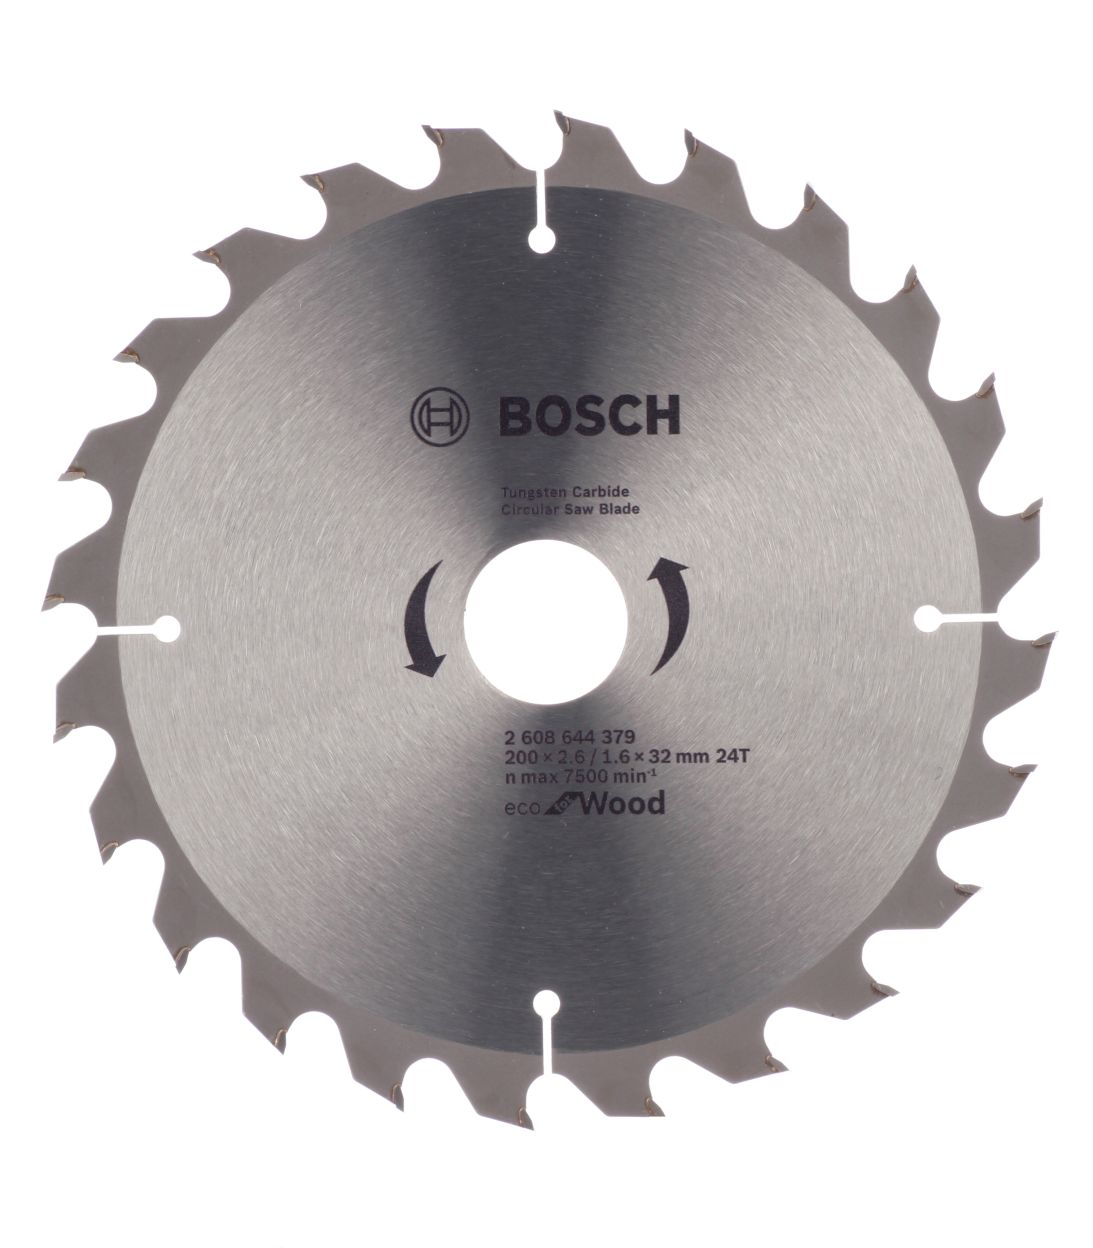 Диск пильный Bosch Optiline ECO 200х24х32 мм пильный диск eco wood 254x30 мм 40t bosch 2608644383